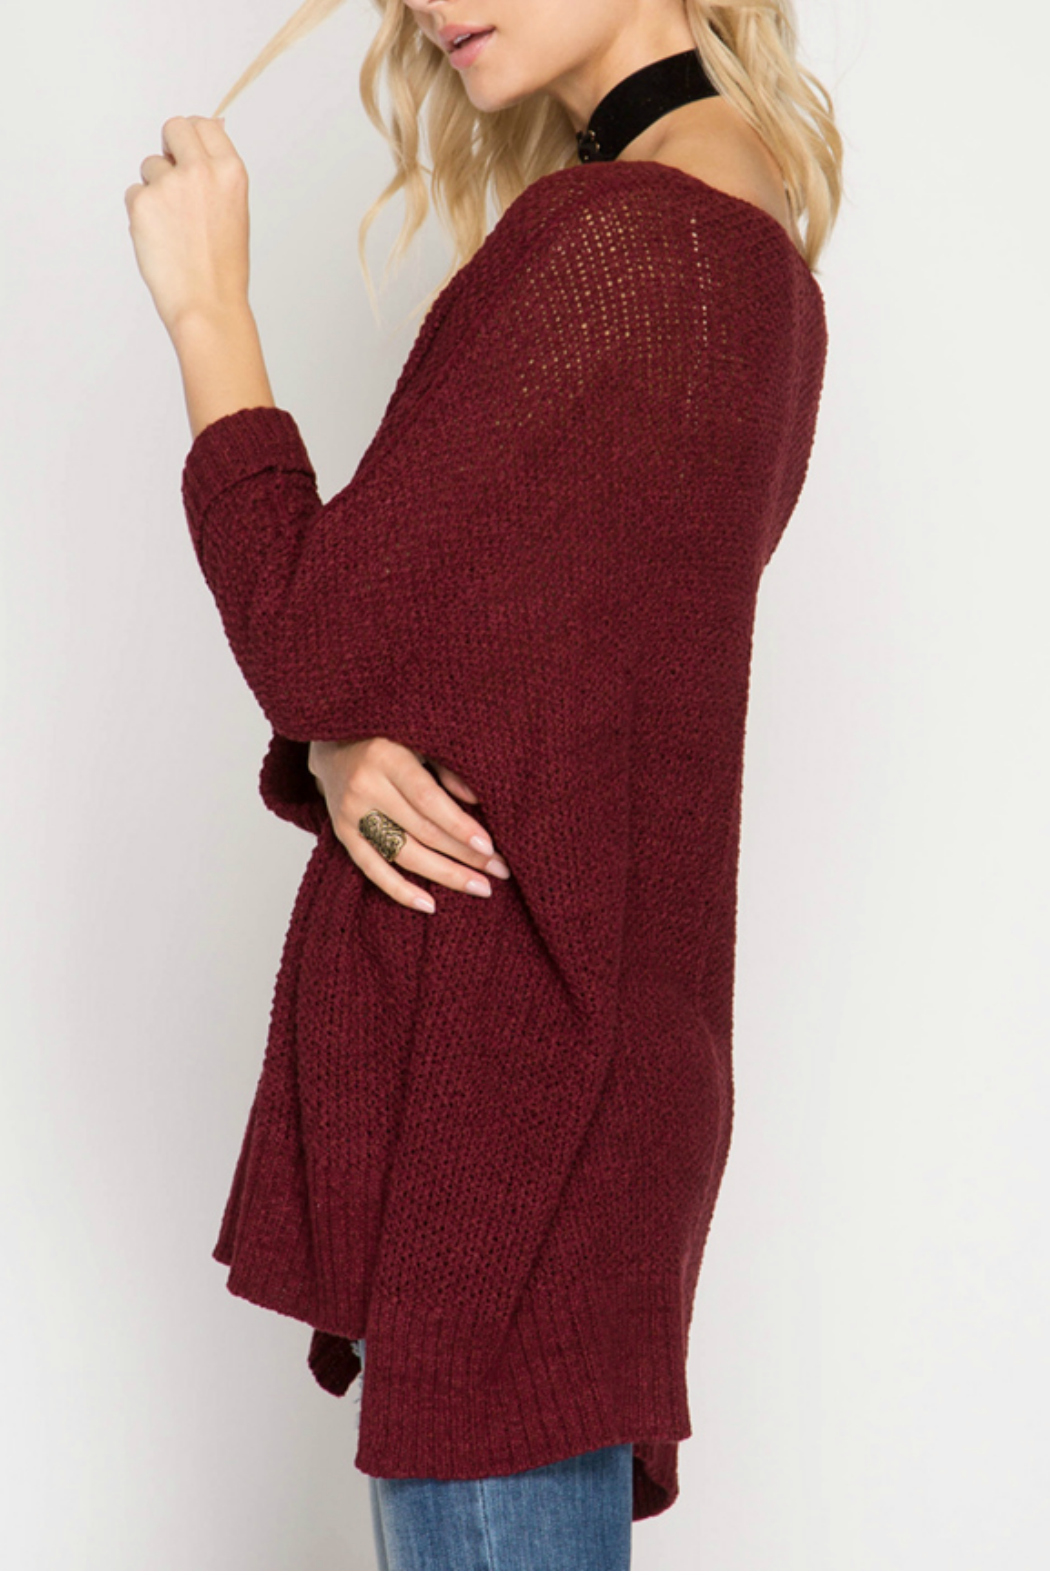 She + Sky 3/4 SLEEVE HI LOW SWEATER WITH FOLDED CUFFS - Front Full Image